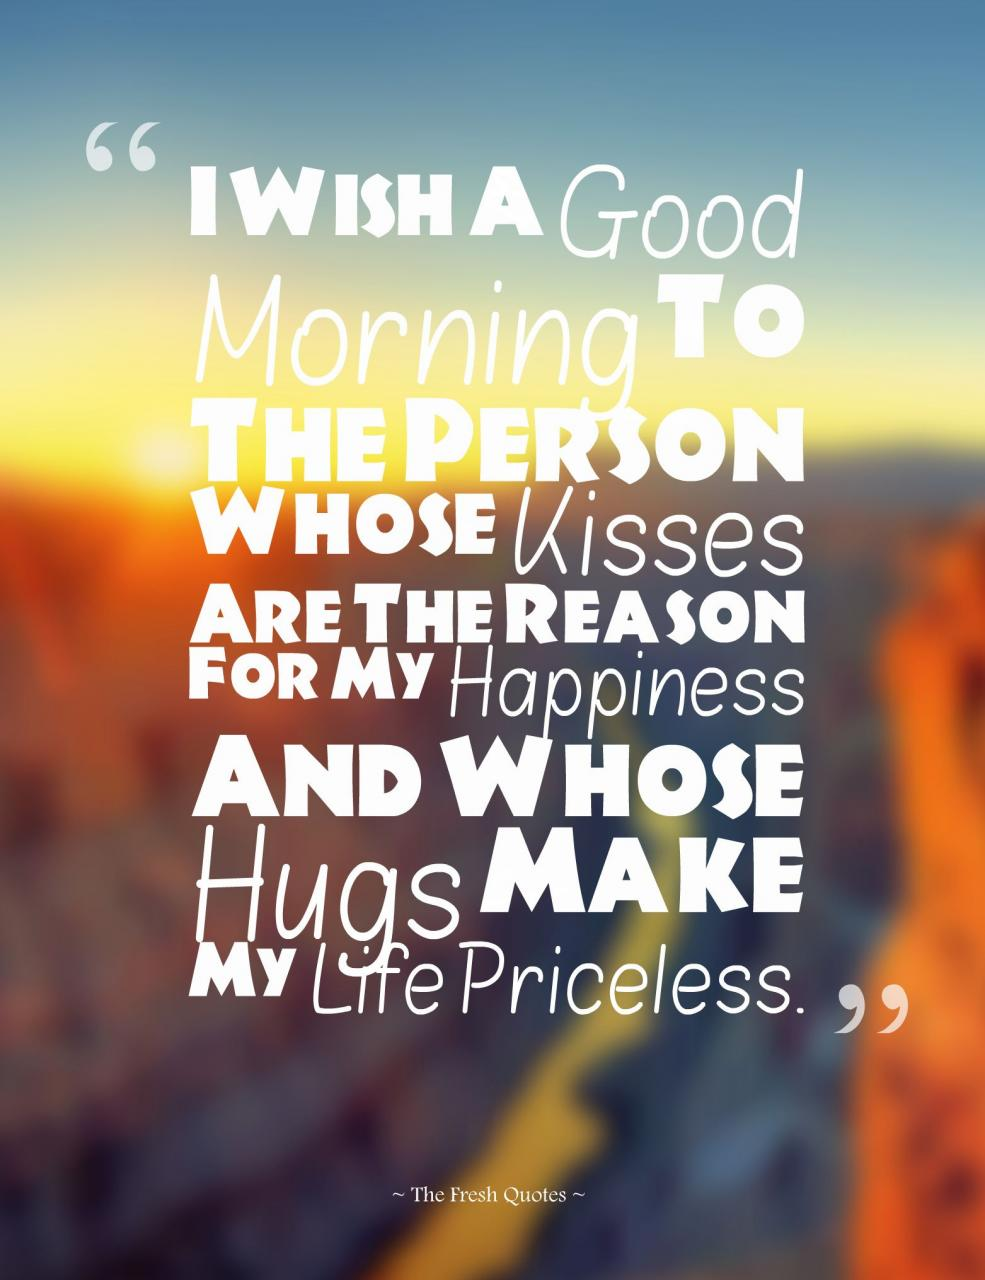 Cute Romantic Good Morning Wishes Images The Fresh Quotes